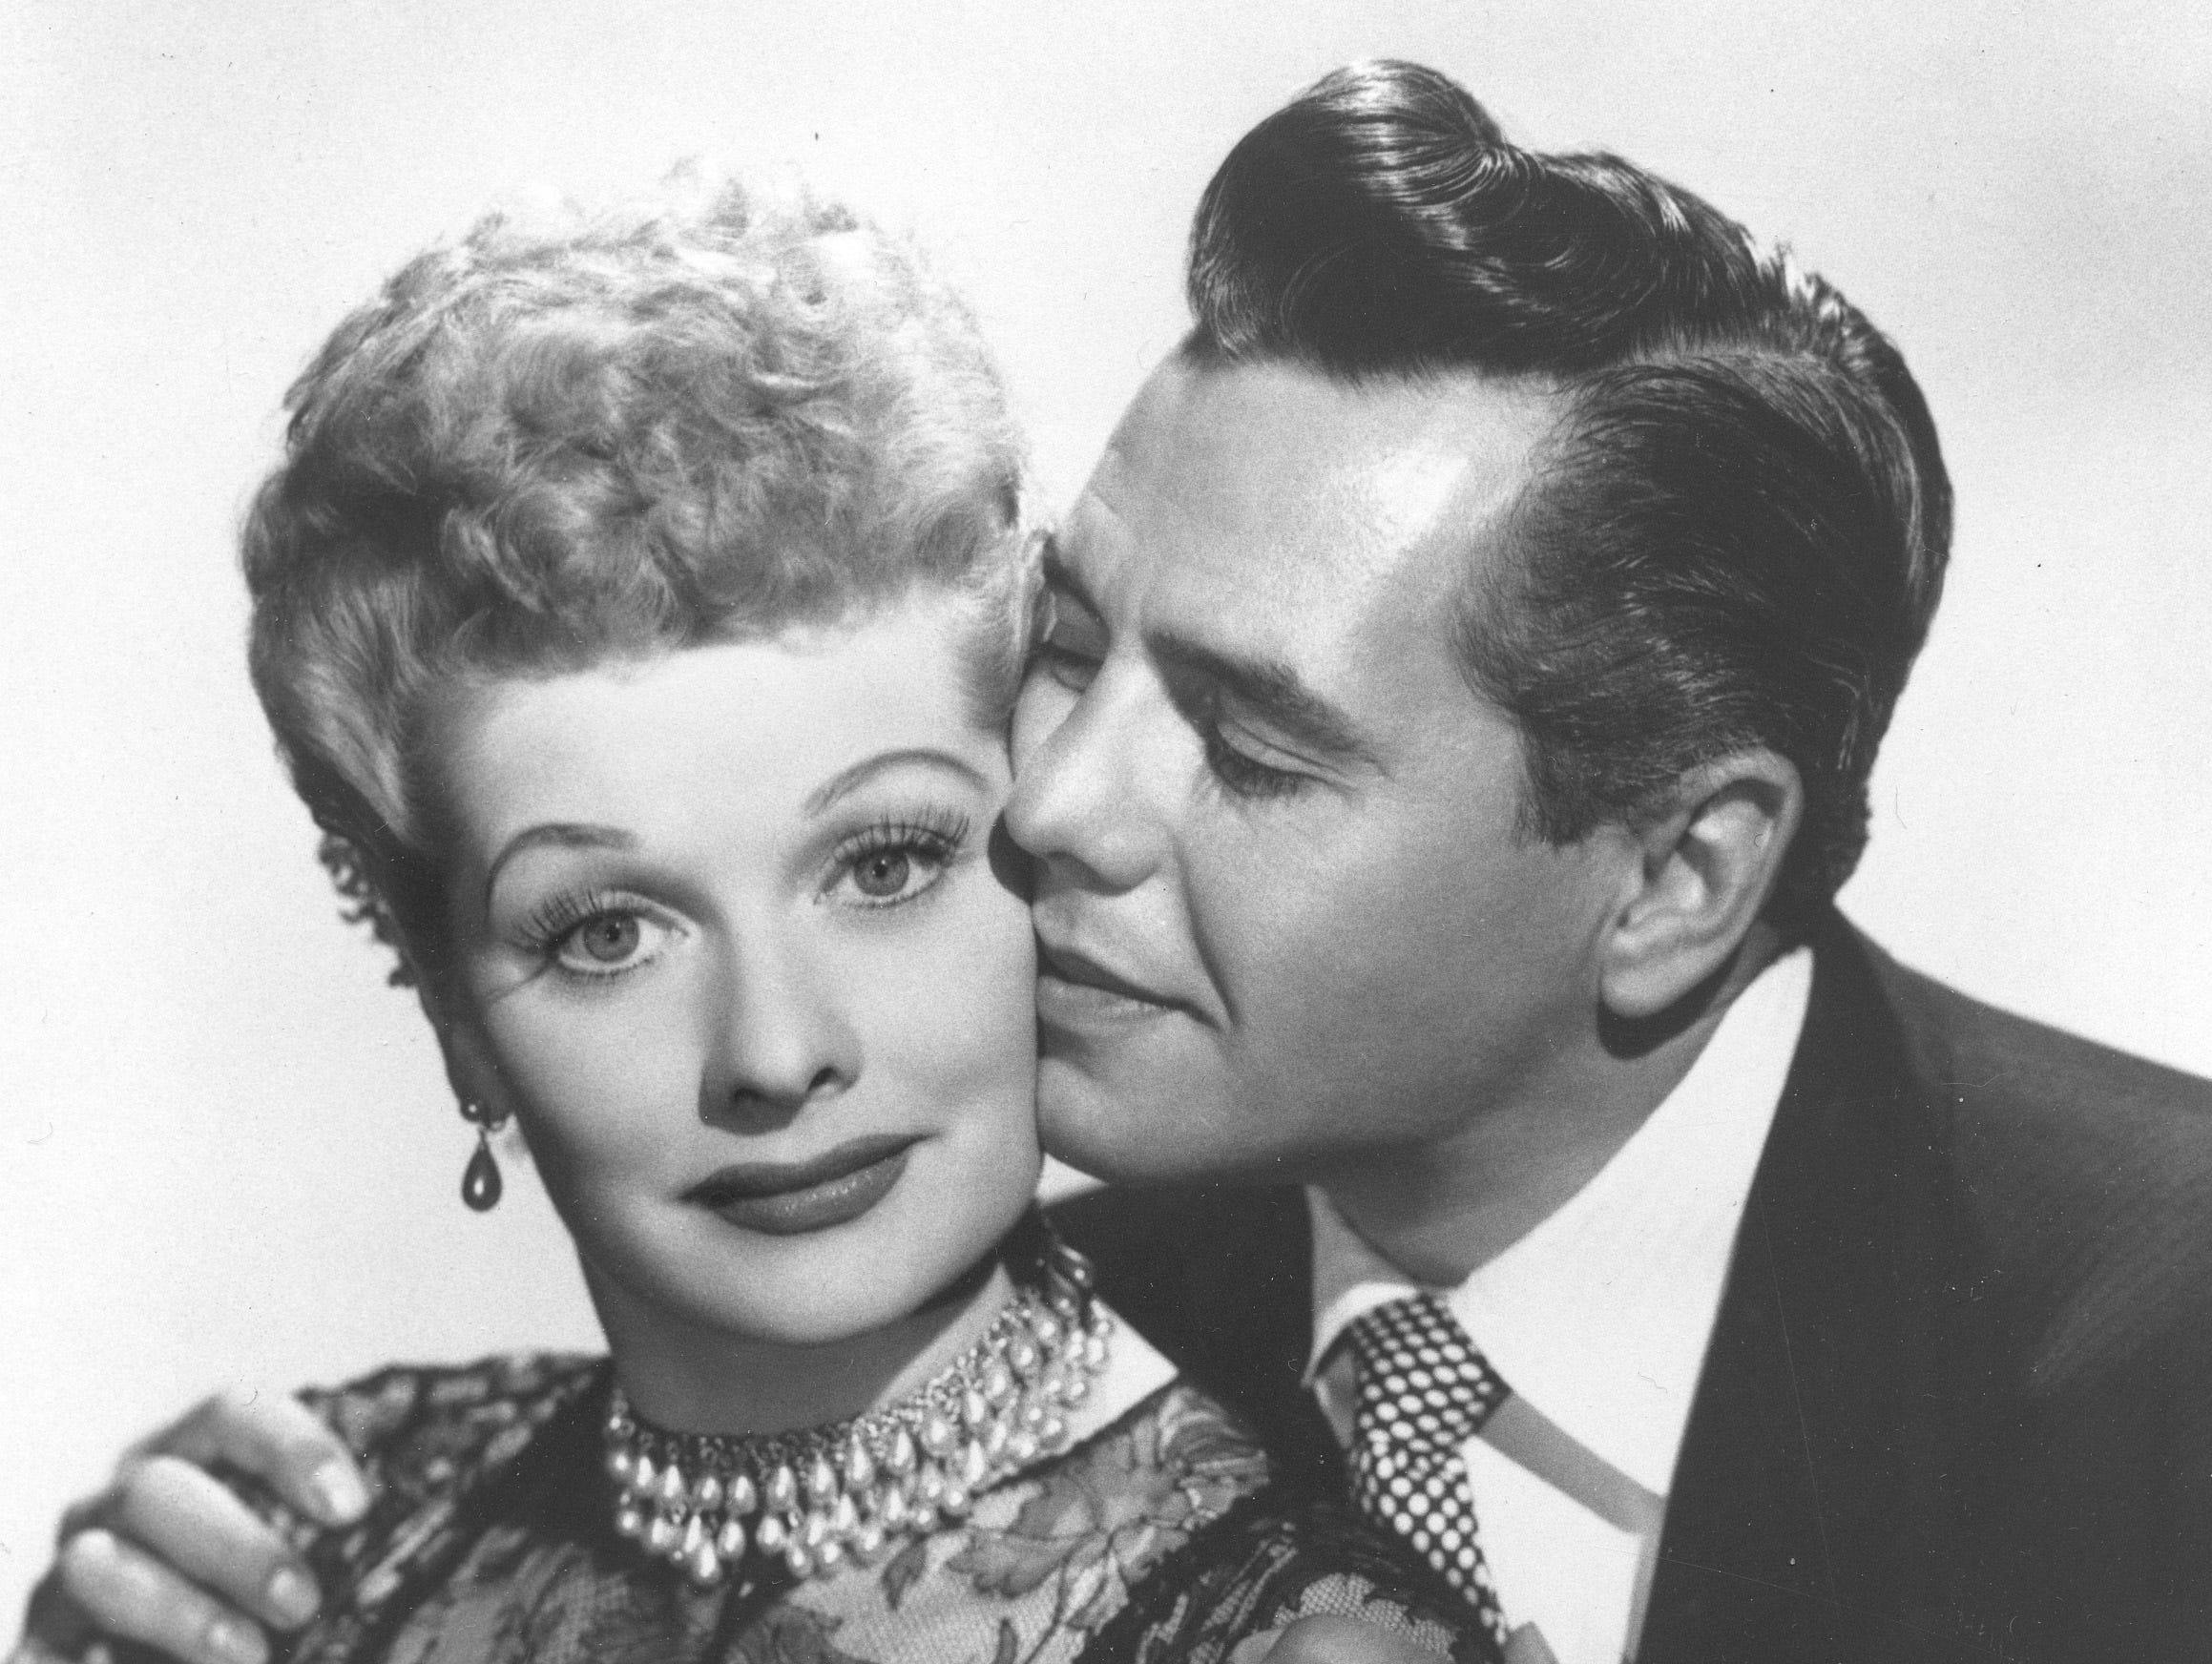 Comedian-actress Lucille Ball and her husband, musician-actor Desi Arnaz, are shown in this undated photo.   (AP Photo) ORG XMIT: APHS120 (Via MerlinFTP Drop)